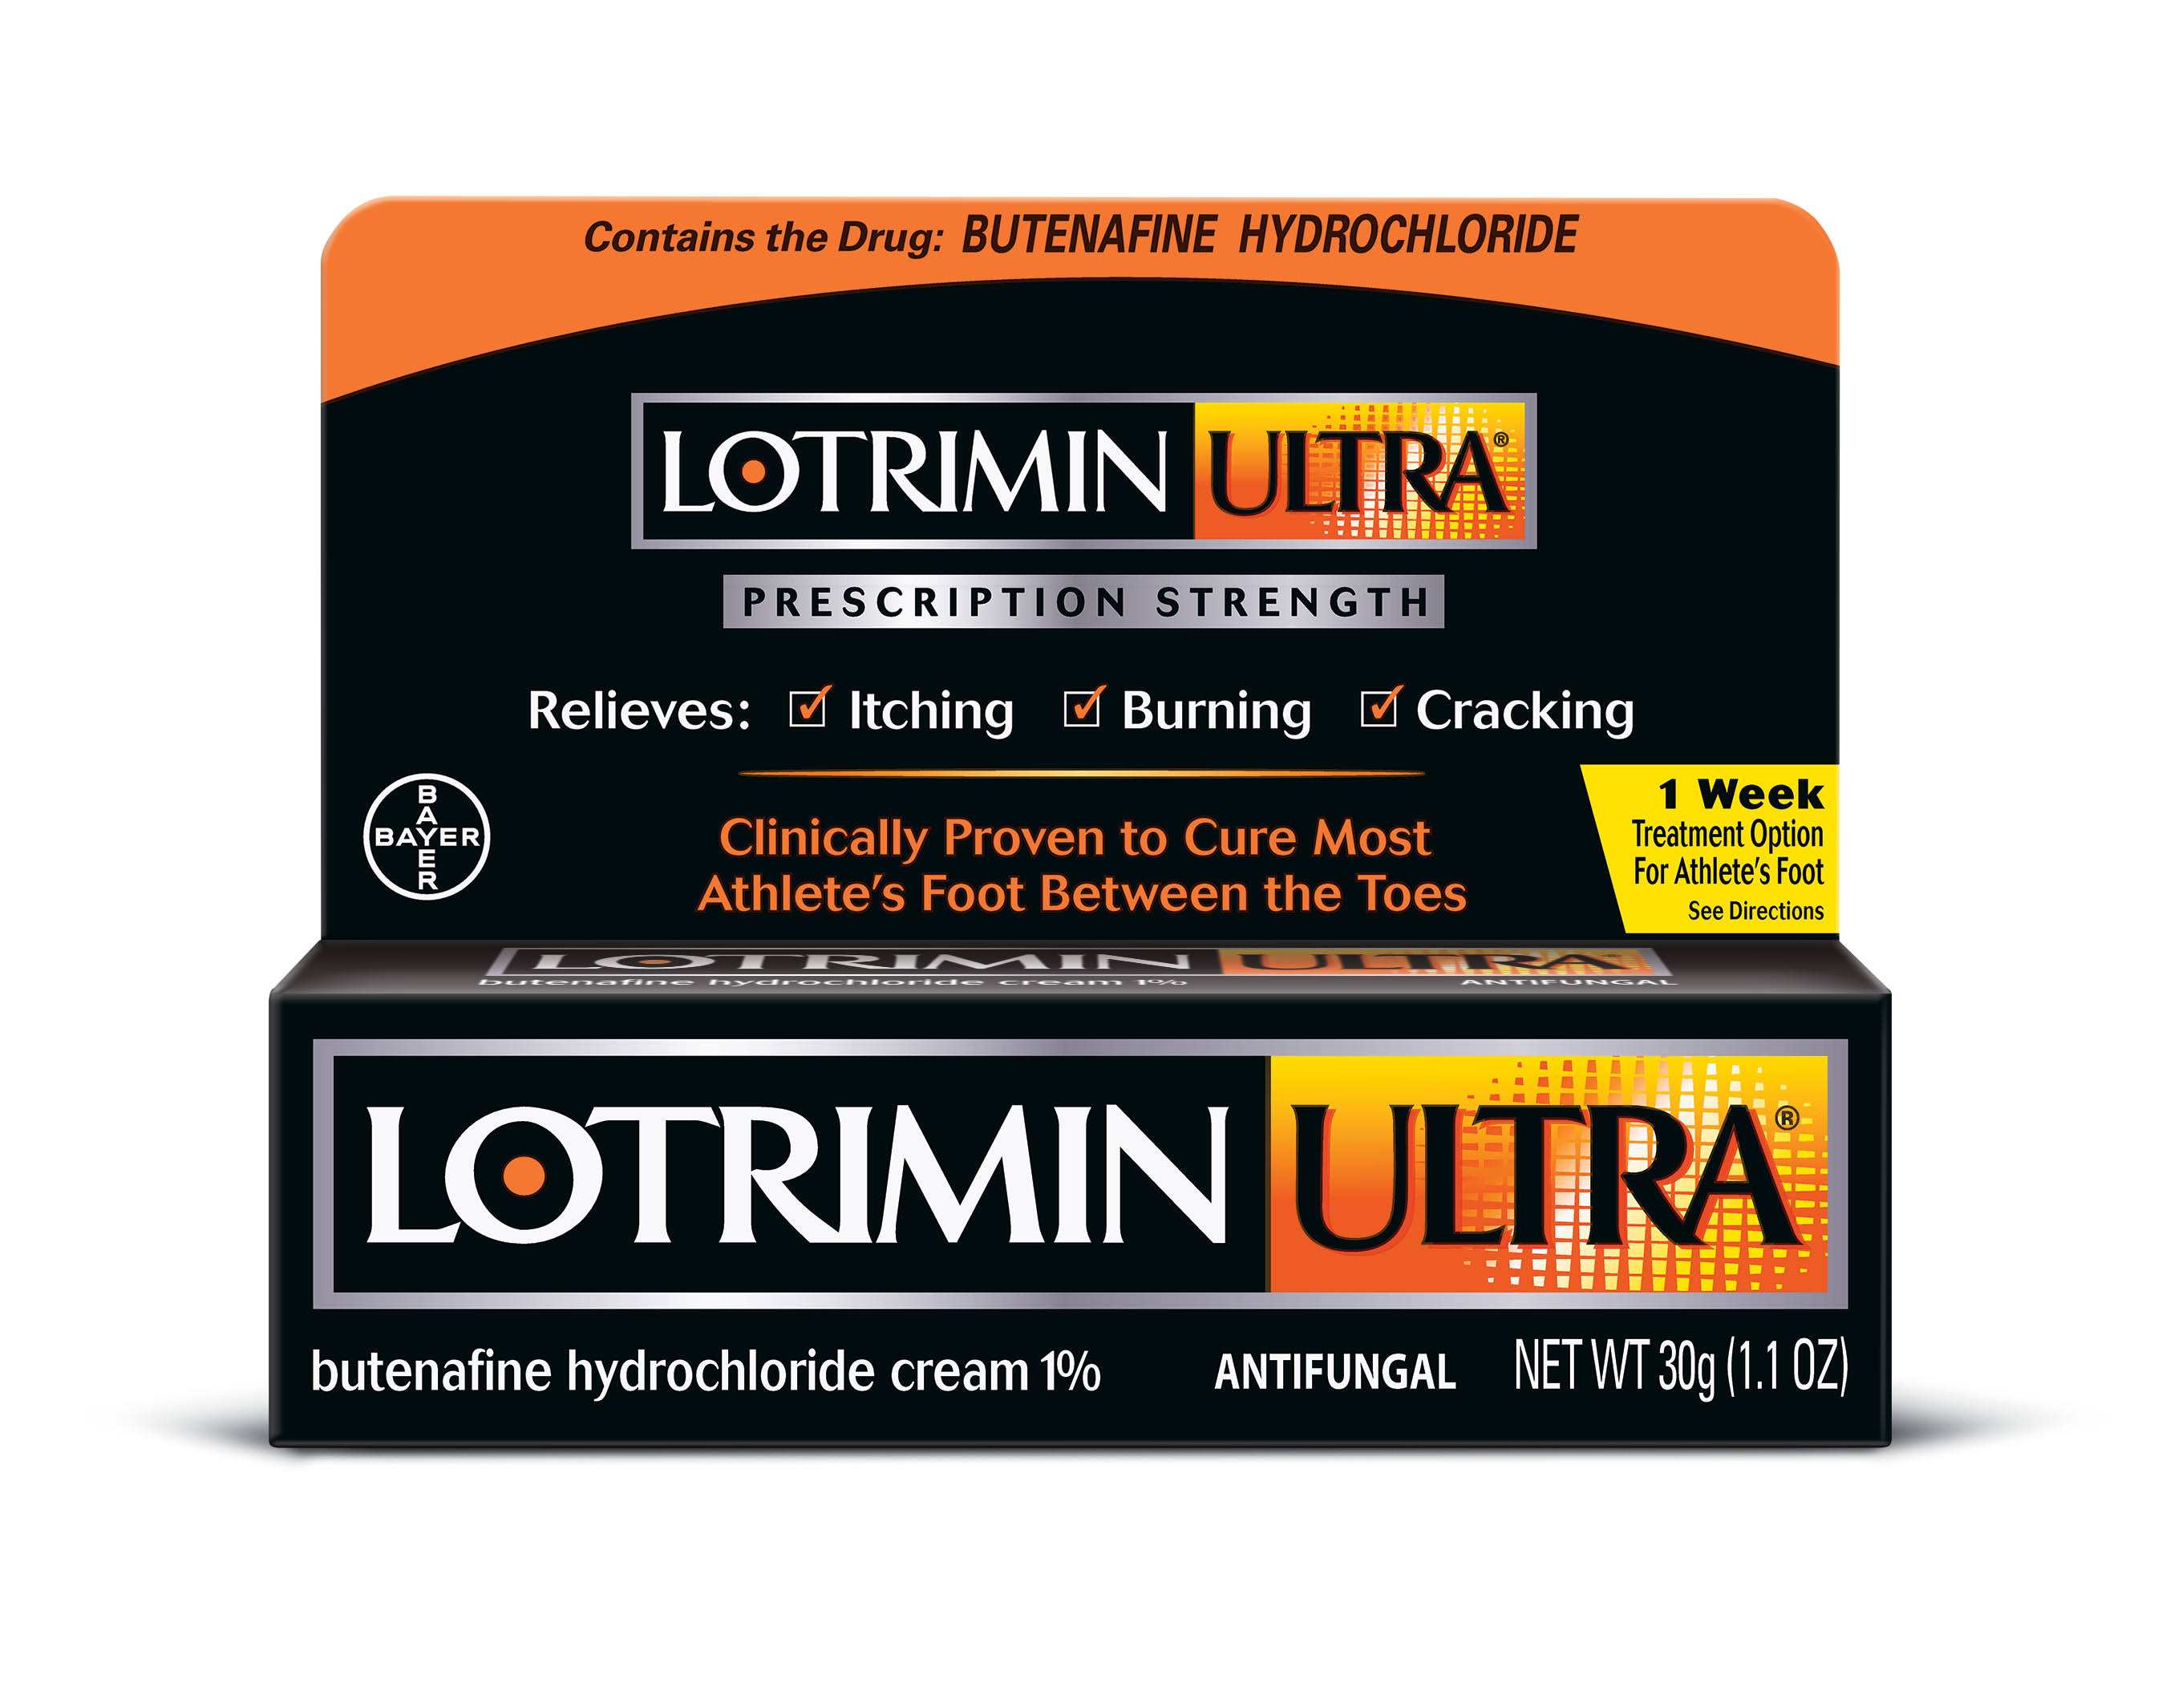 Lotrimin Ultra Prescription Strength Antifungal Cream - 30g